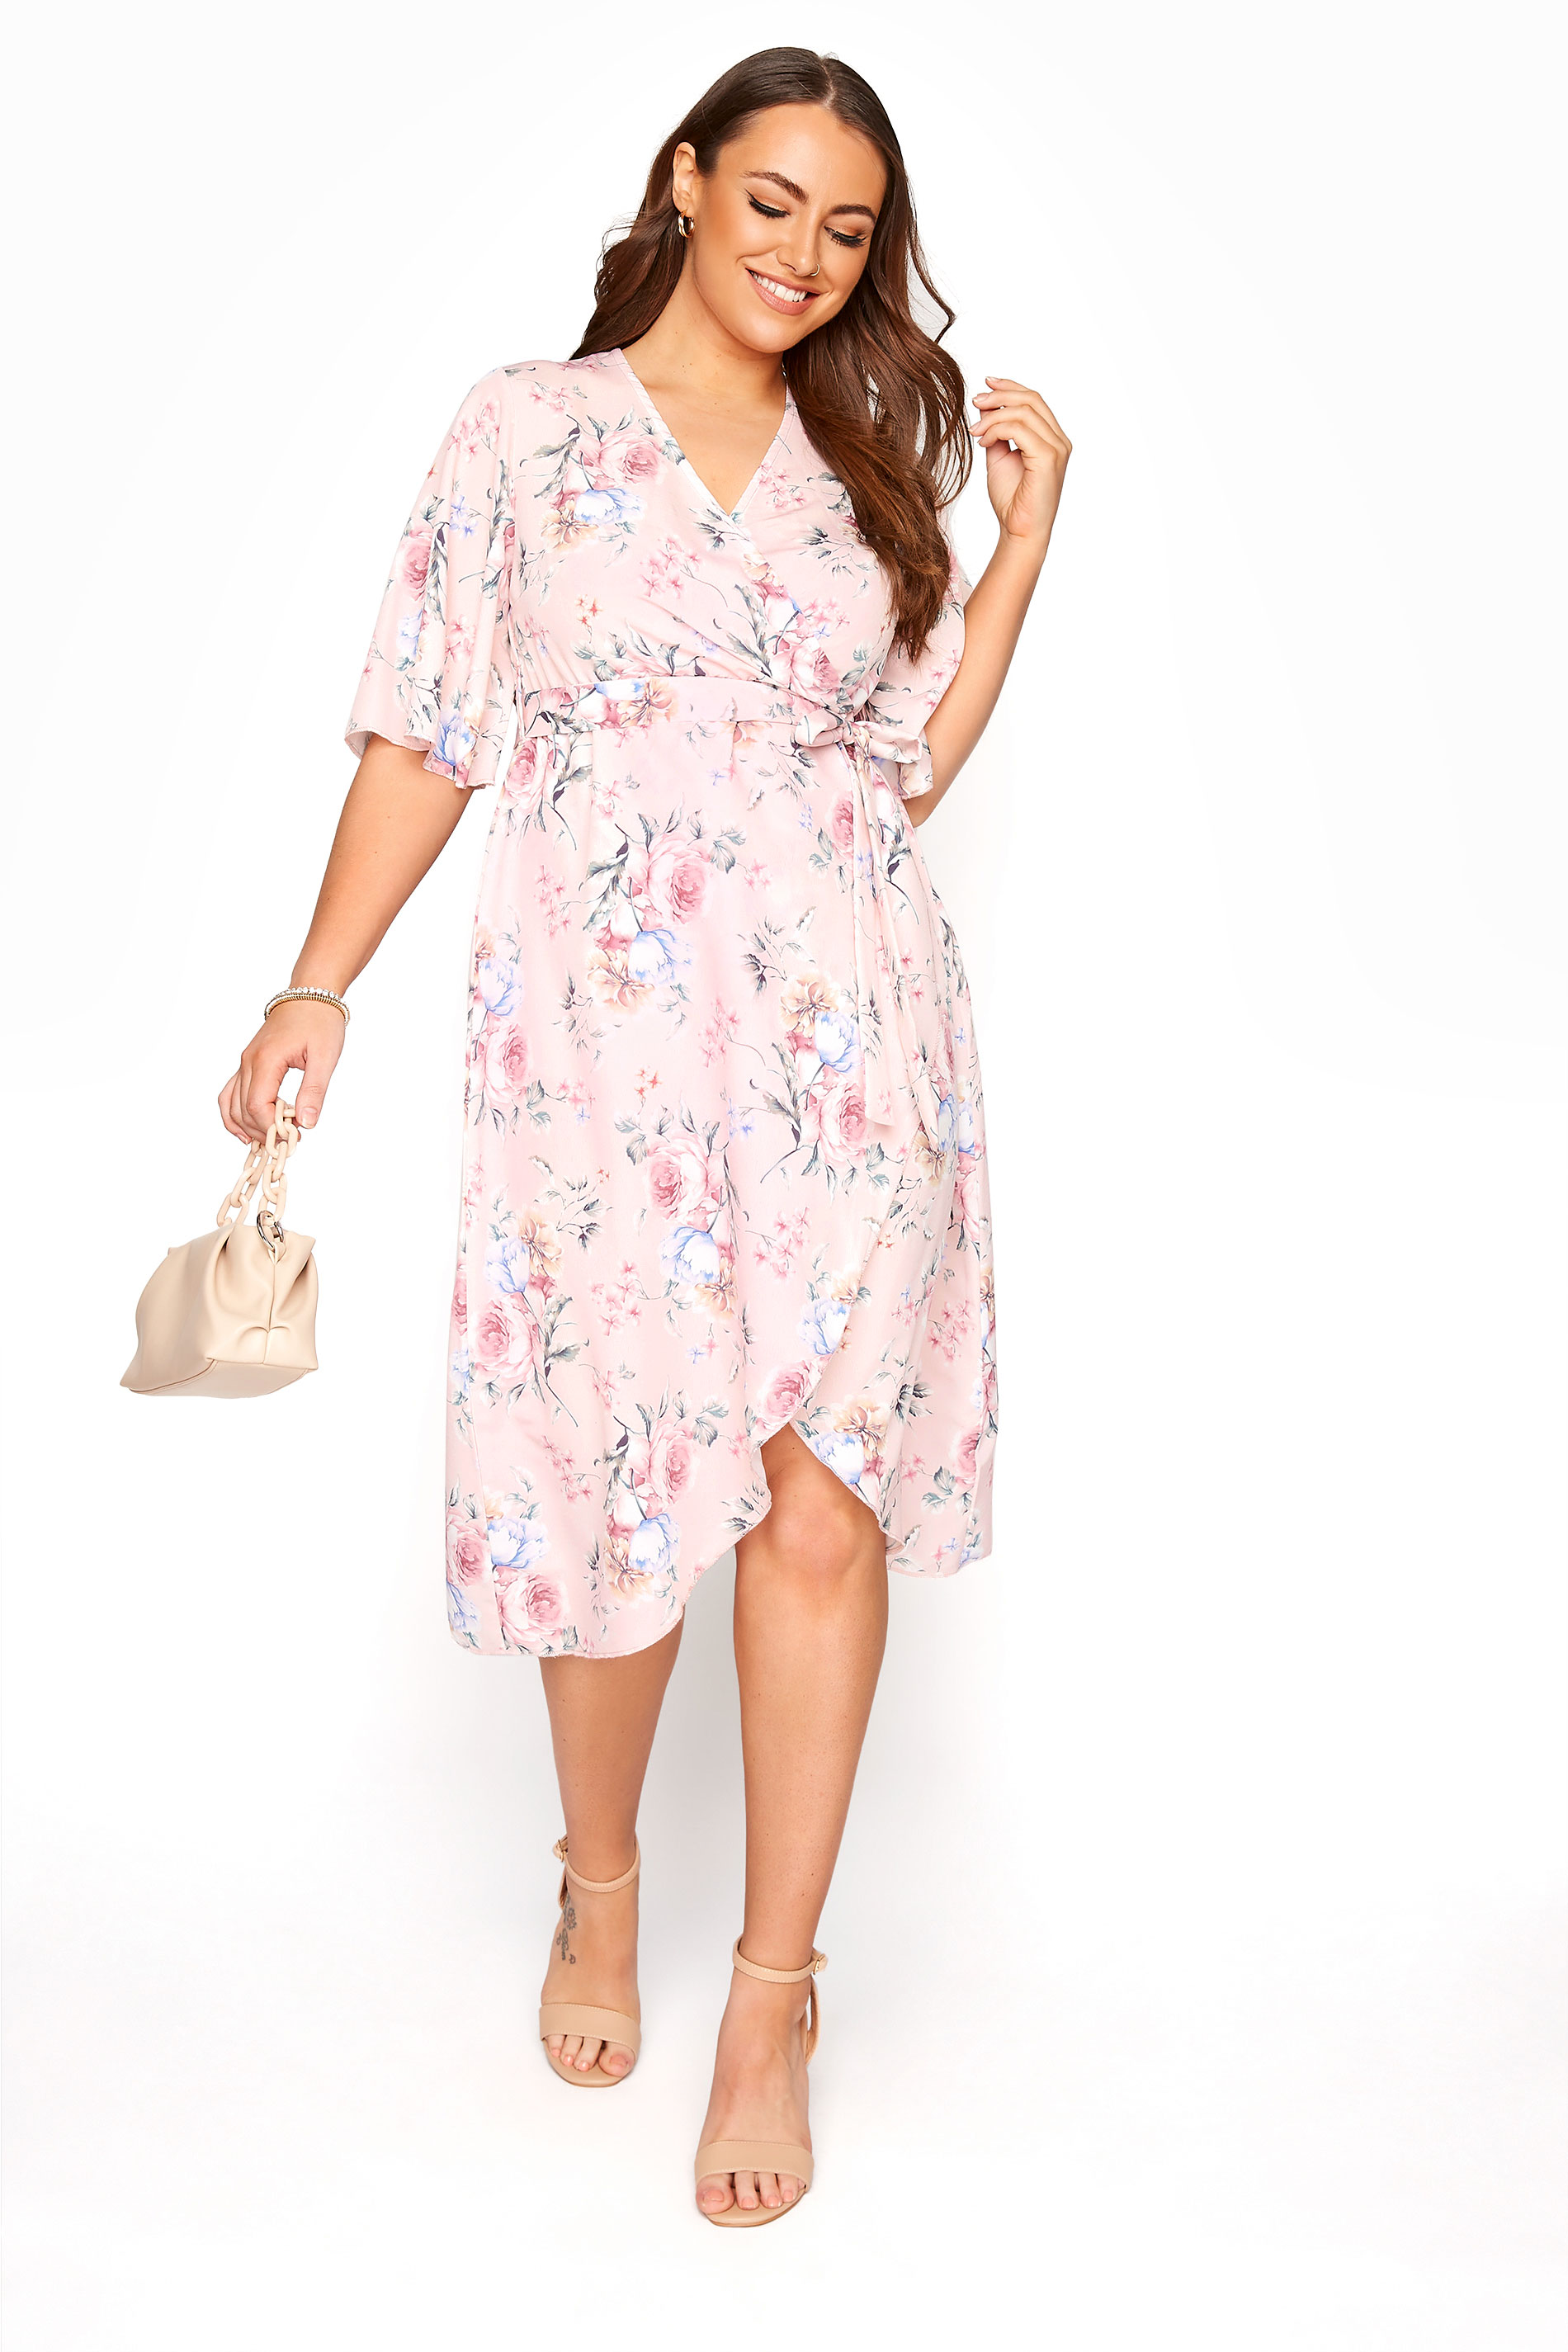 Yours Clothing Women/'s Plus Size Yours London Green Ditsy Floral Wrap Dress